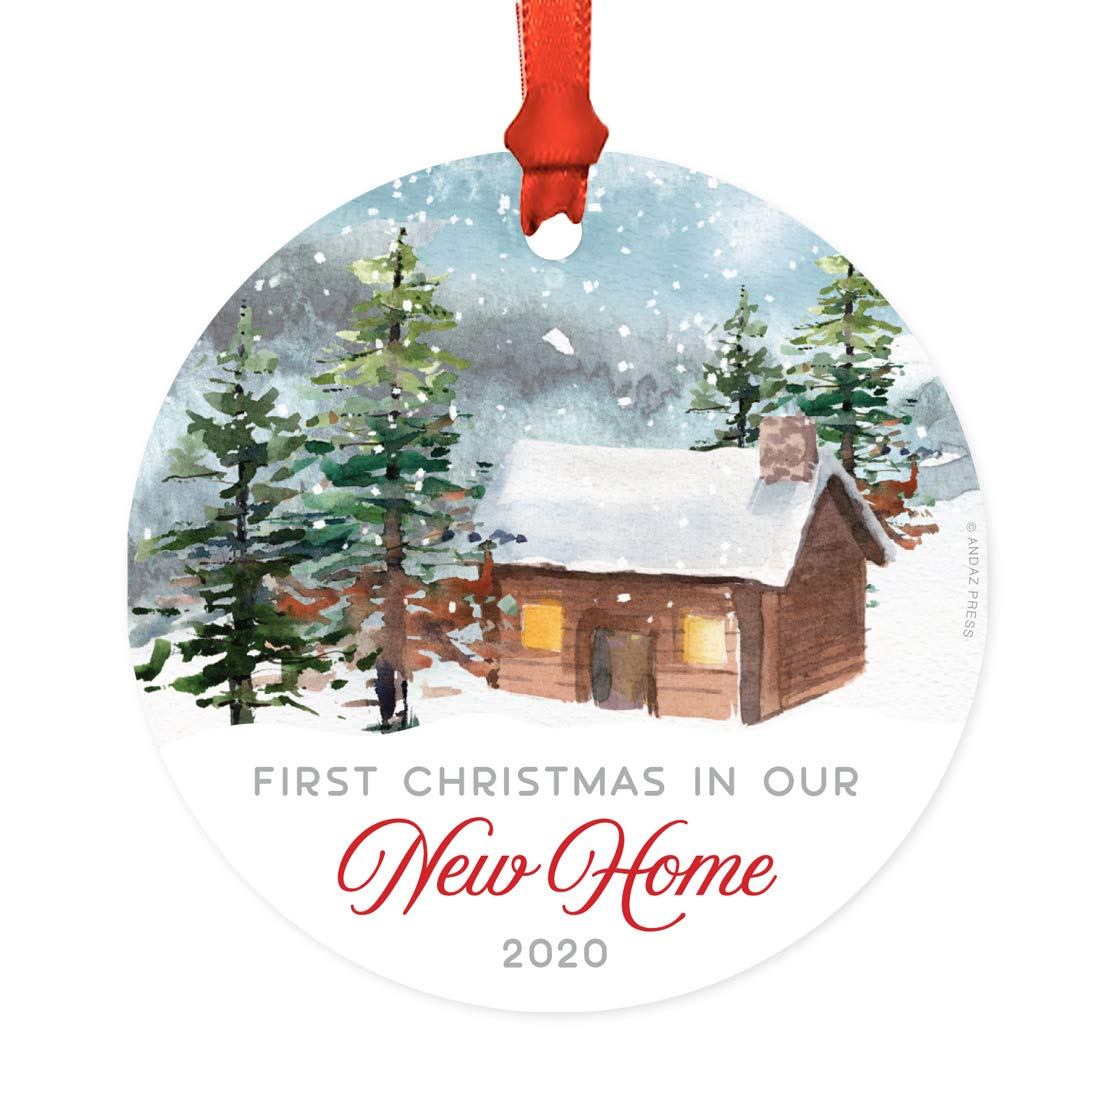 New Home Ornament 2020.Andaz Press Metal Christmas Ornament First Christmas In Our New Home 2019 Watercolor Rustic Deer 1 Pack Includes Ribbon And Gift Bag